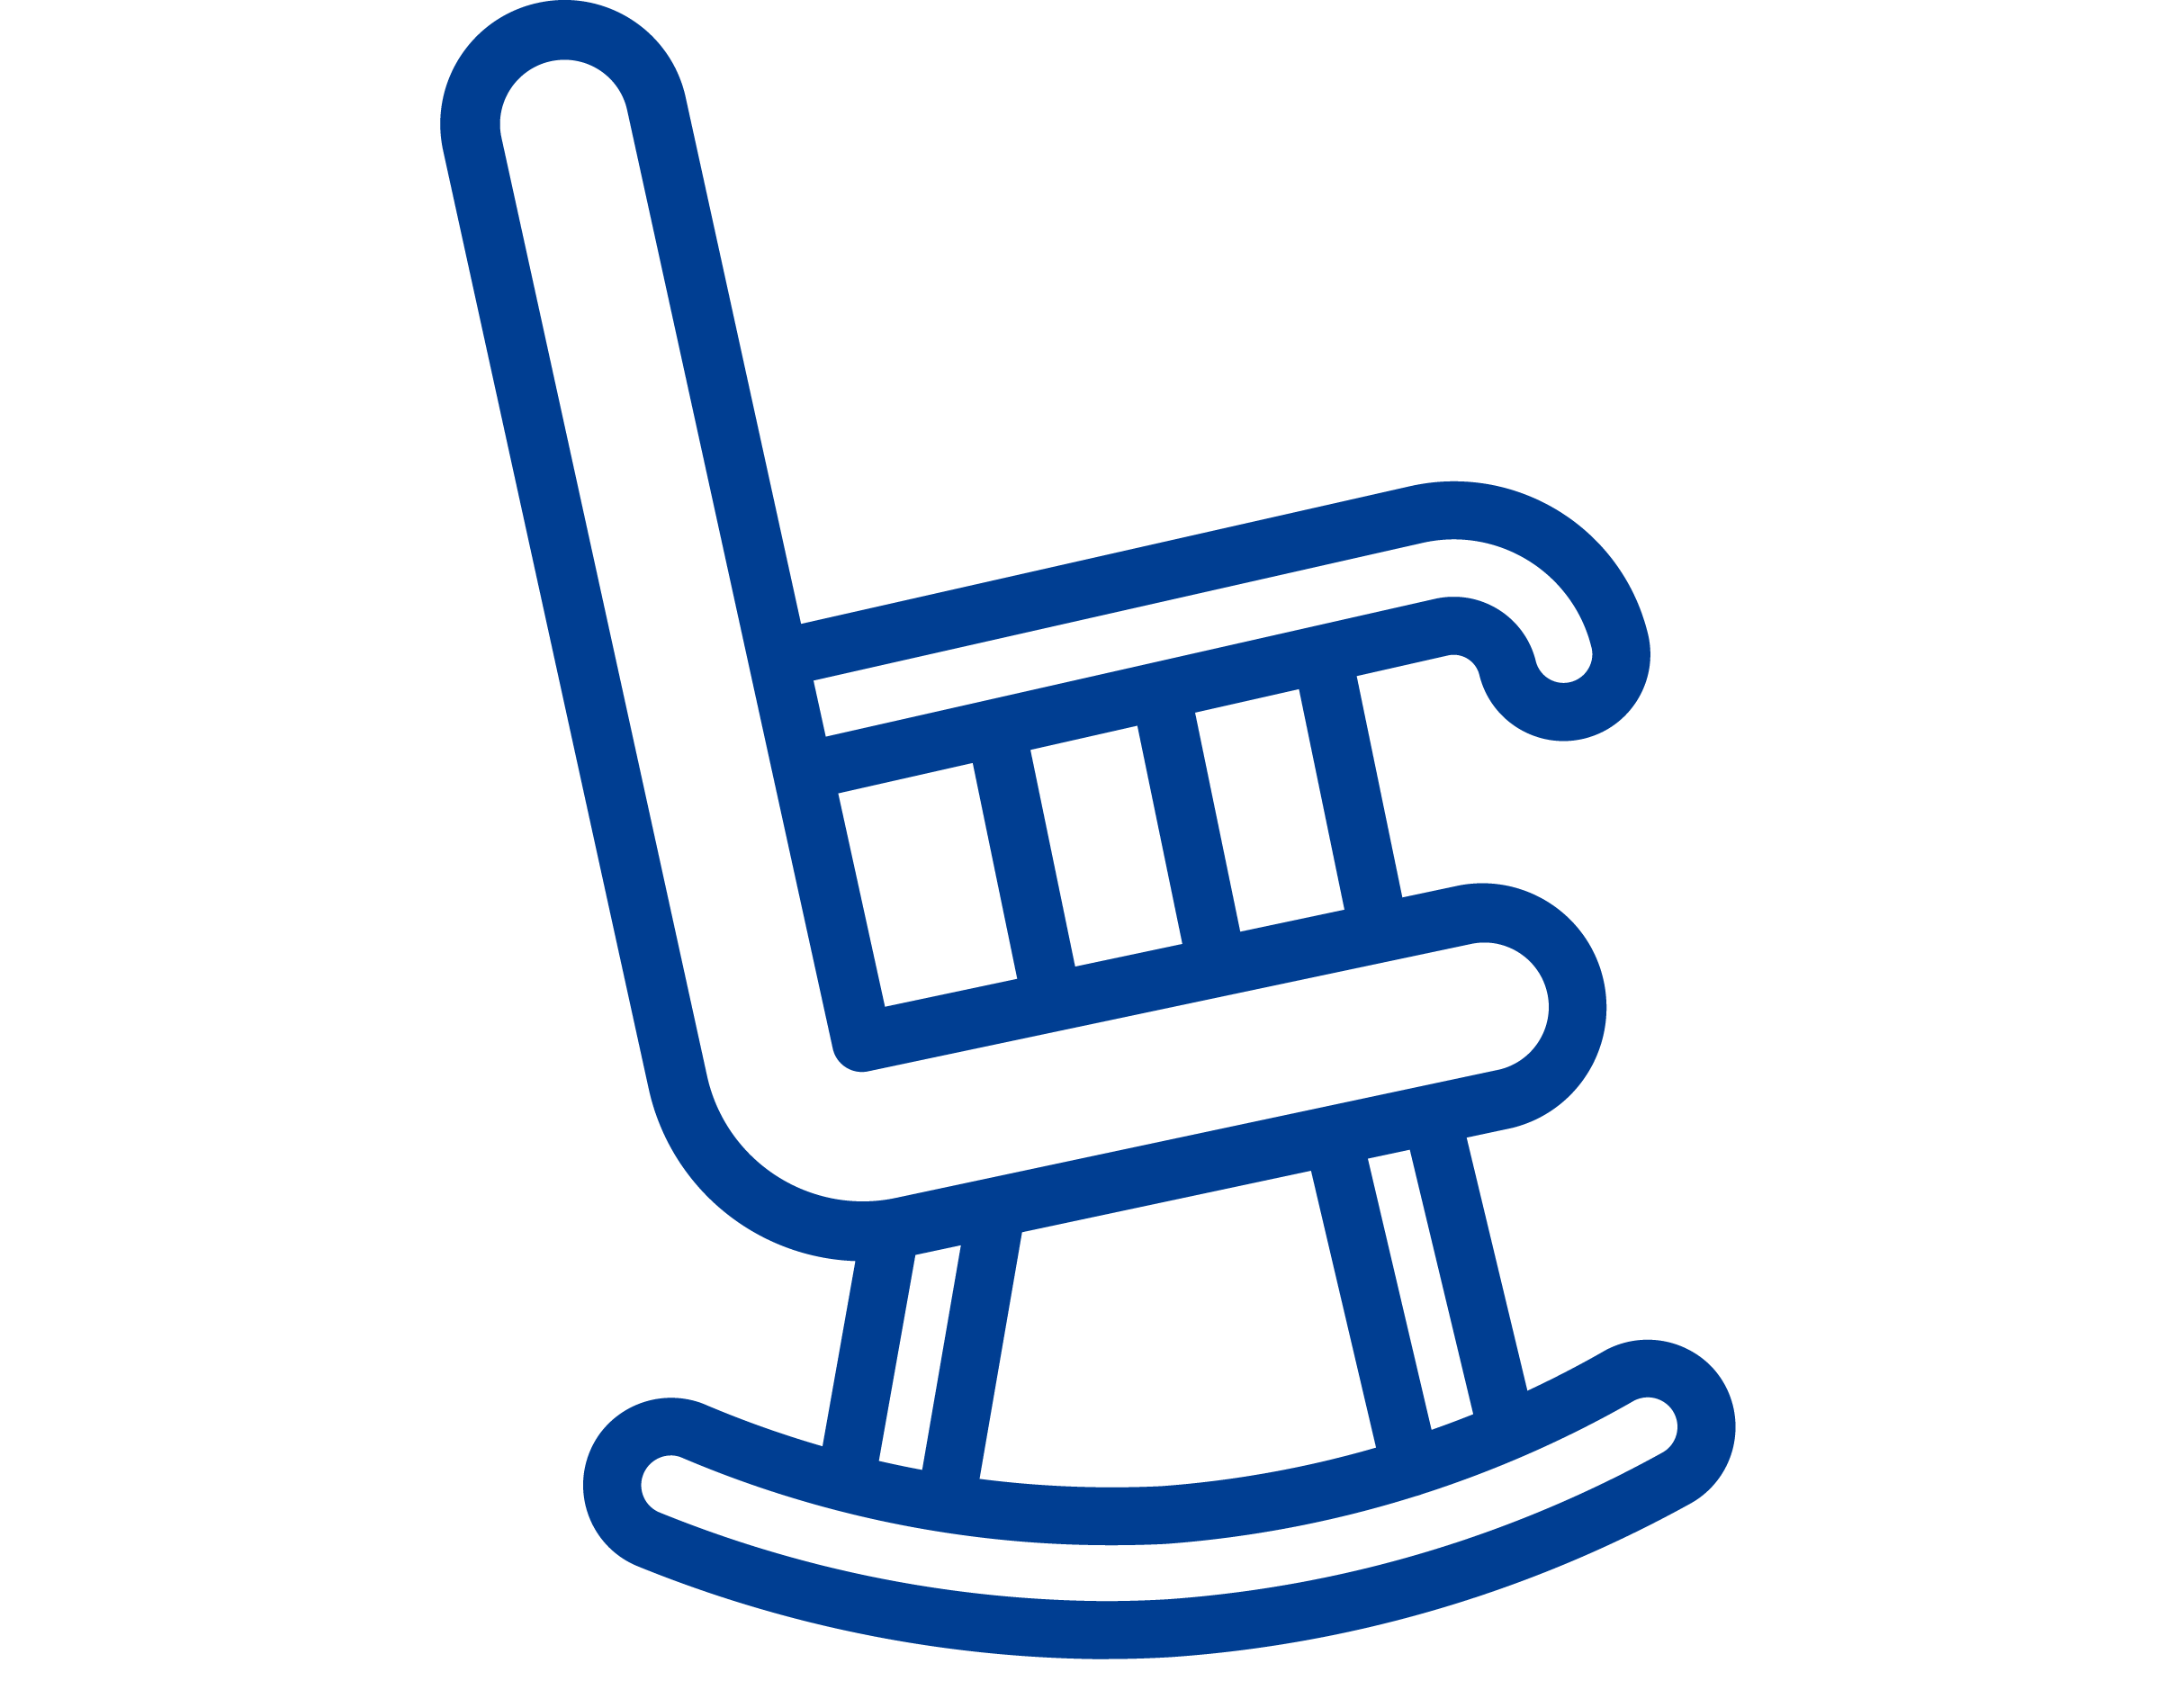 A blue icon of a rocking chair